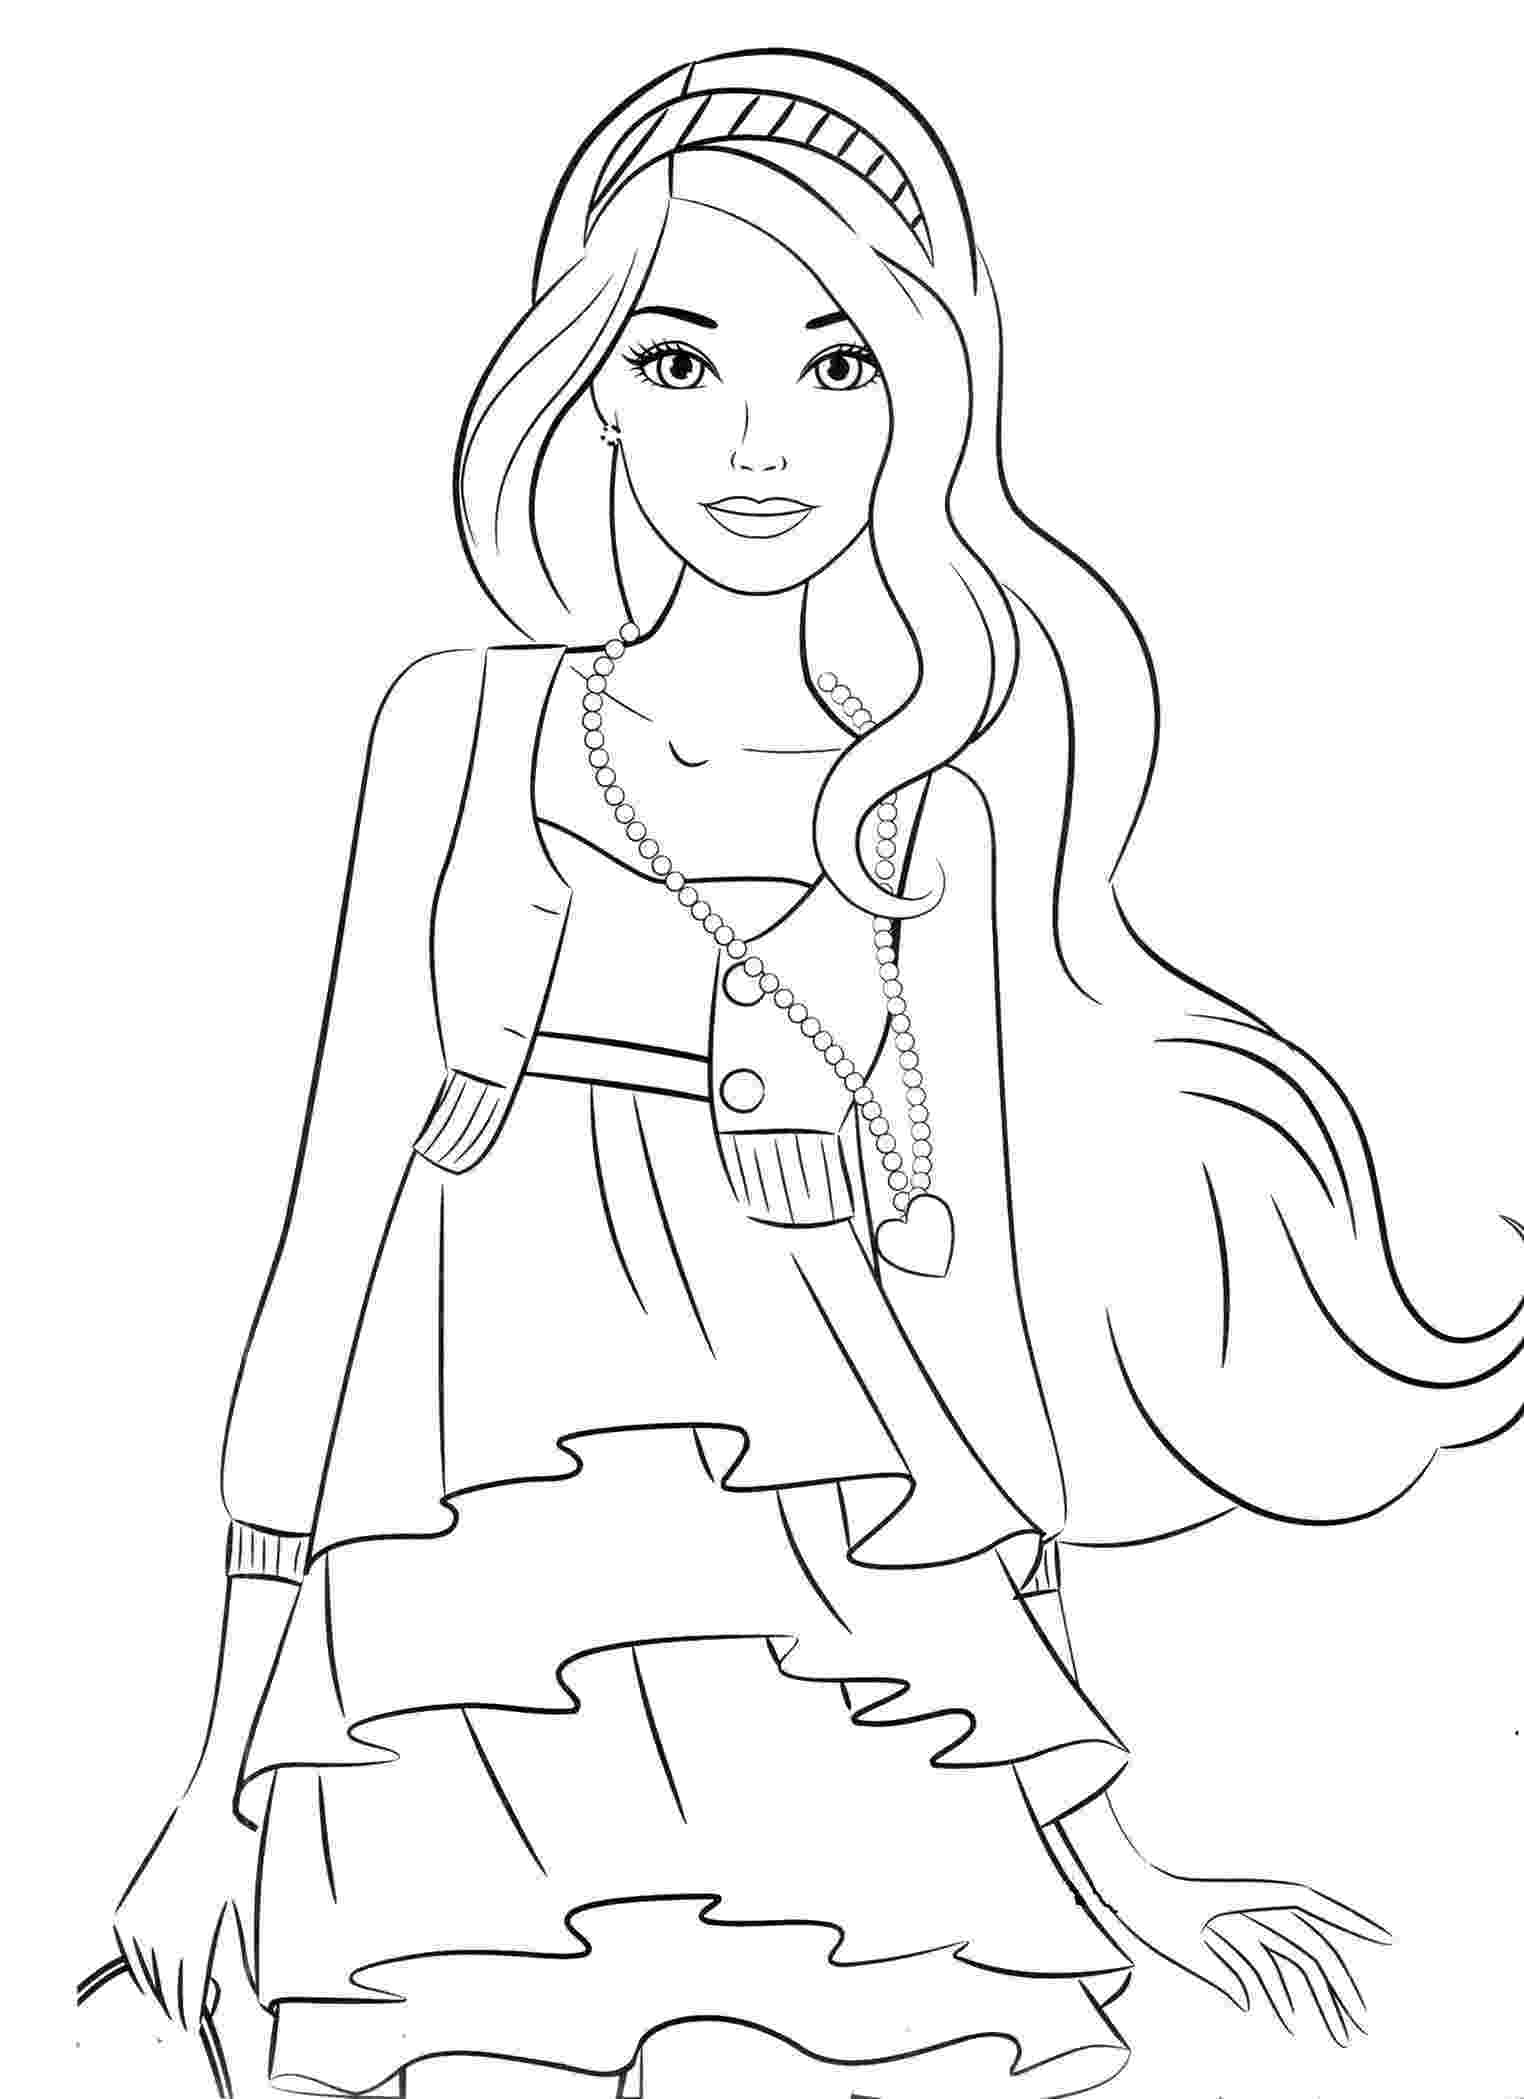 coloring pages printable free printable thor coloring pages for kids printable pages coloring